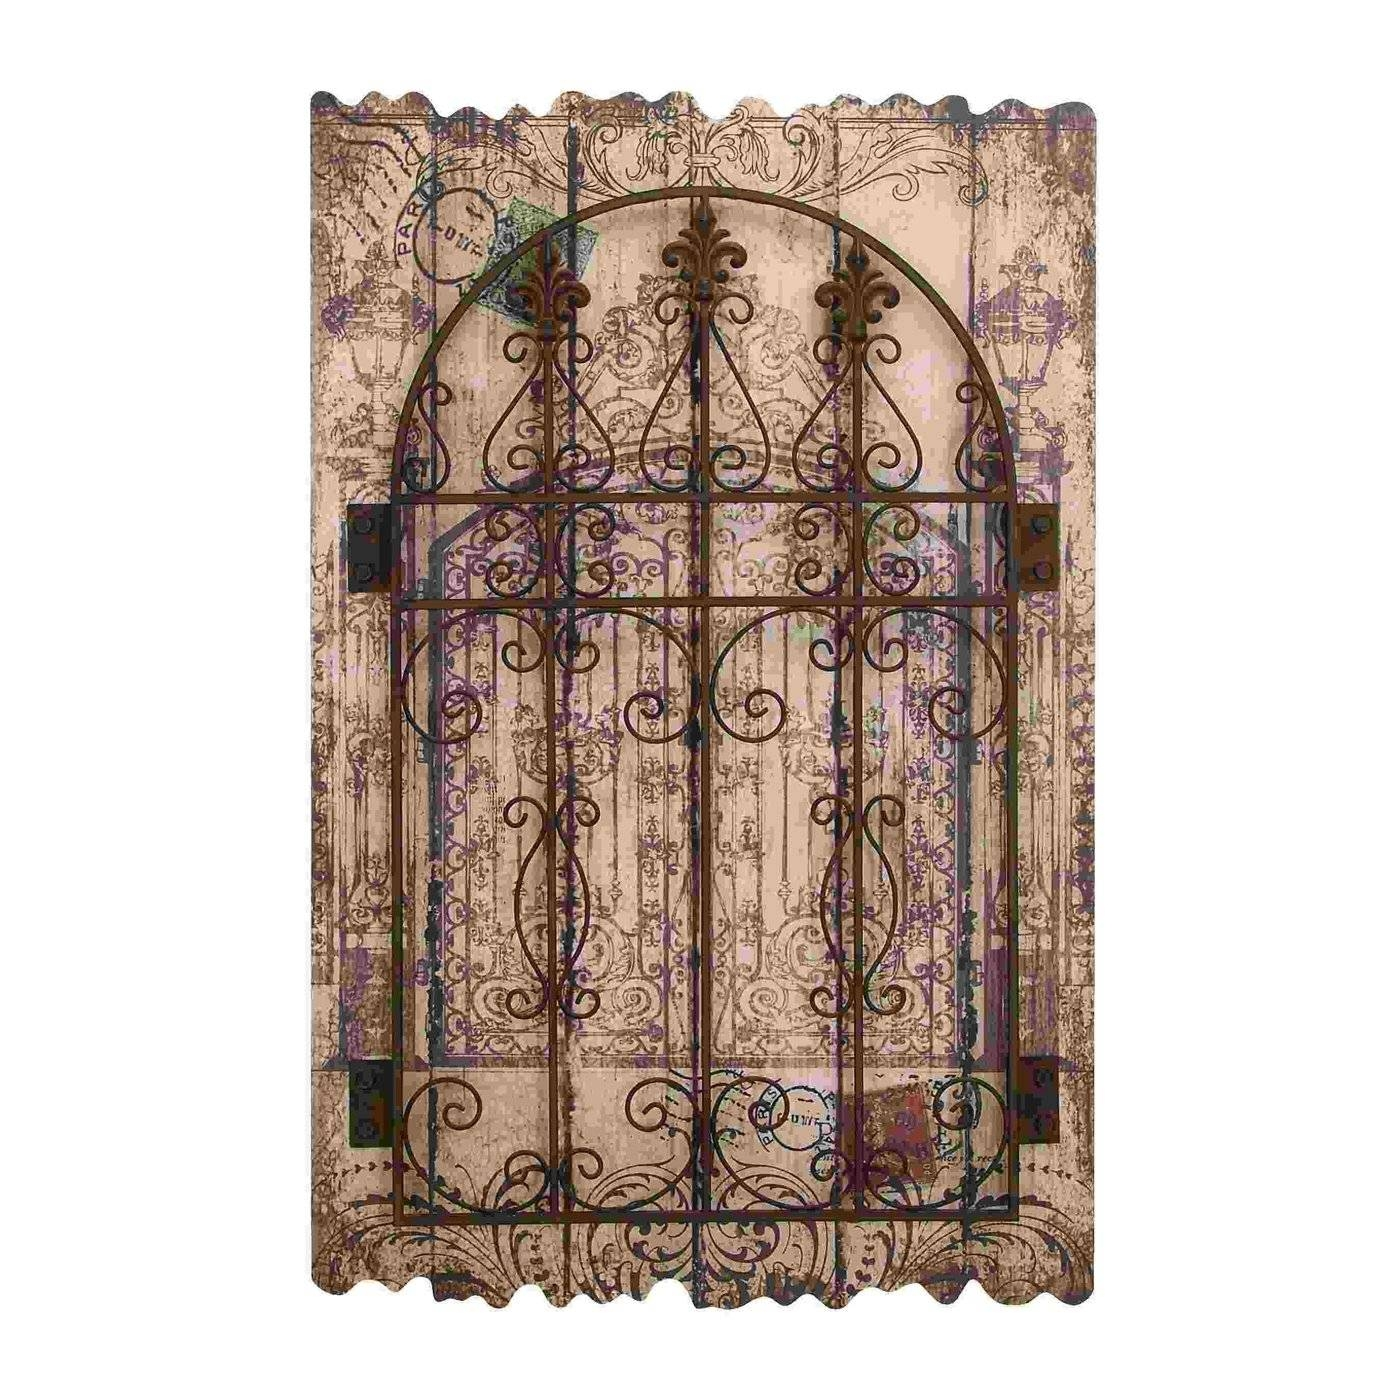 Wall Art Designs: Rustic Wood And Metal Wall Art Transitional In Recent Rustic Metal Wall Art (View 14 of 20)